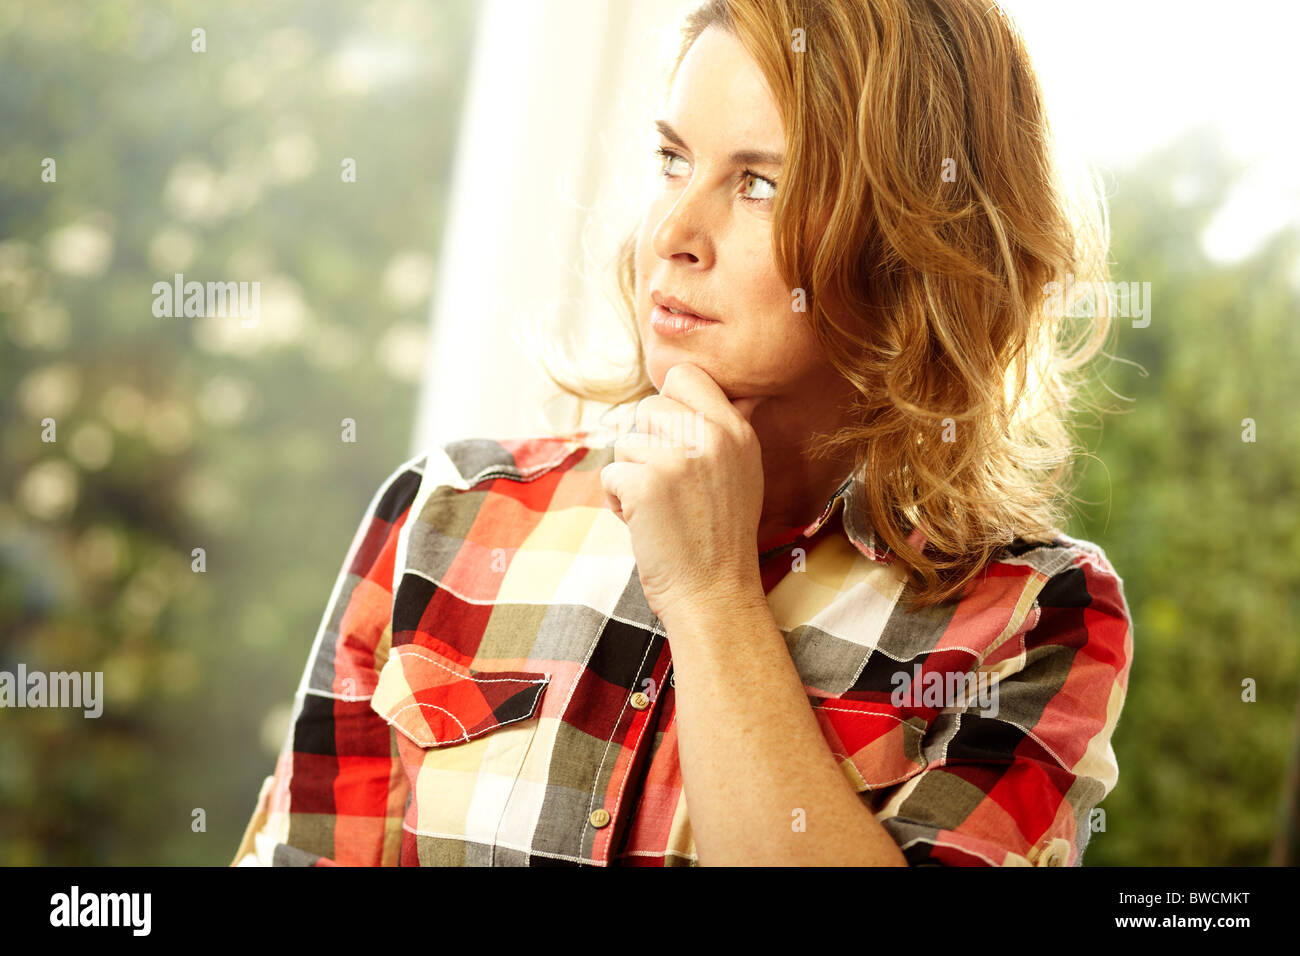 Concerned looking woman Stock Photo